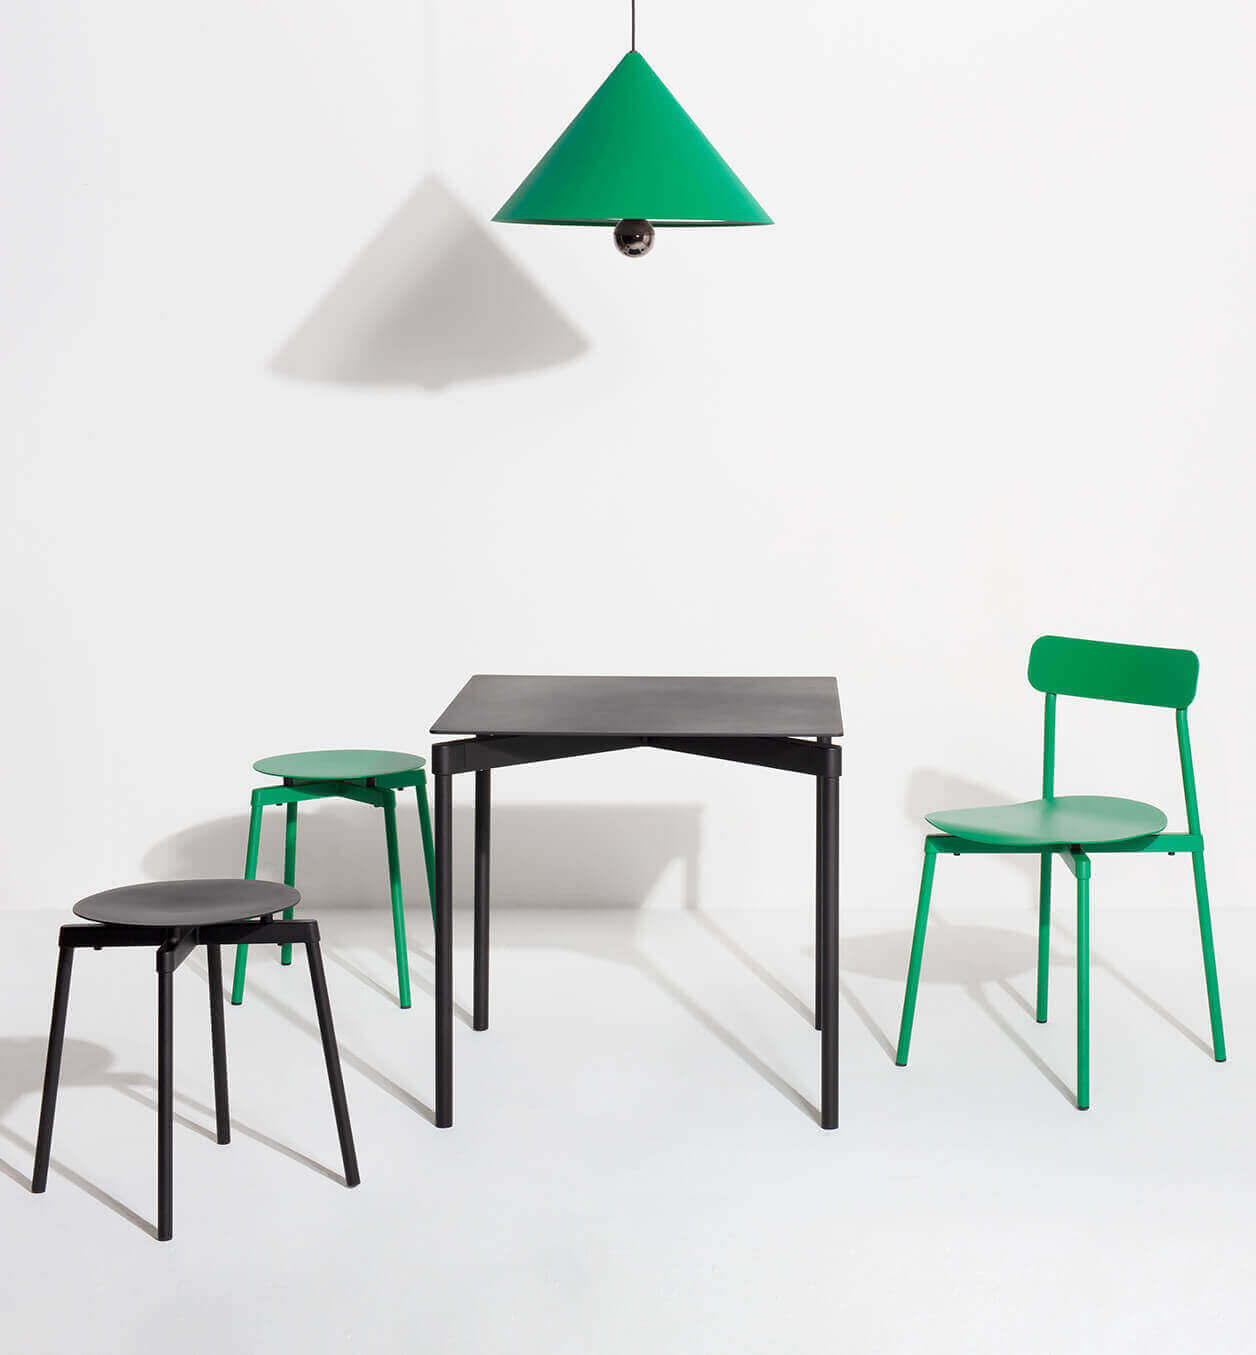 Black Fromme collection and mint green Design furniture - Petite Friture